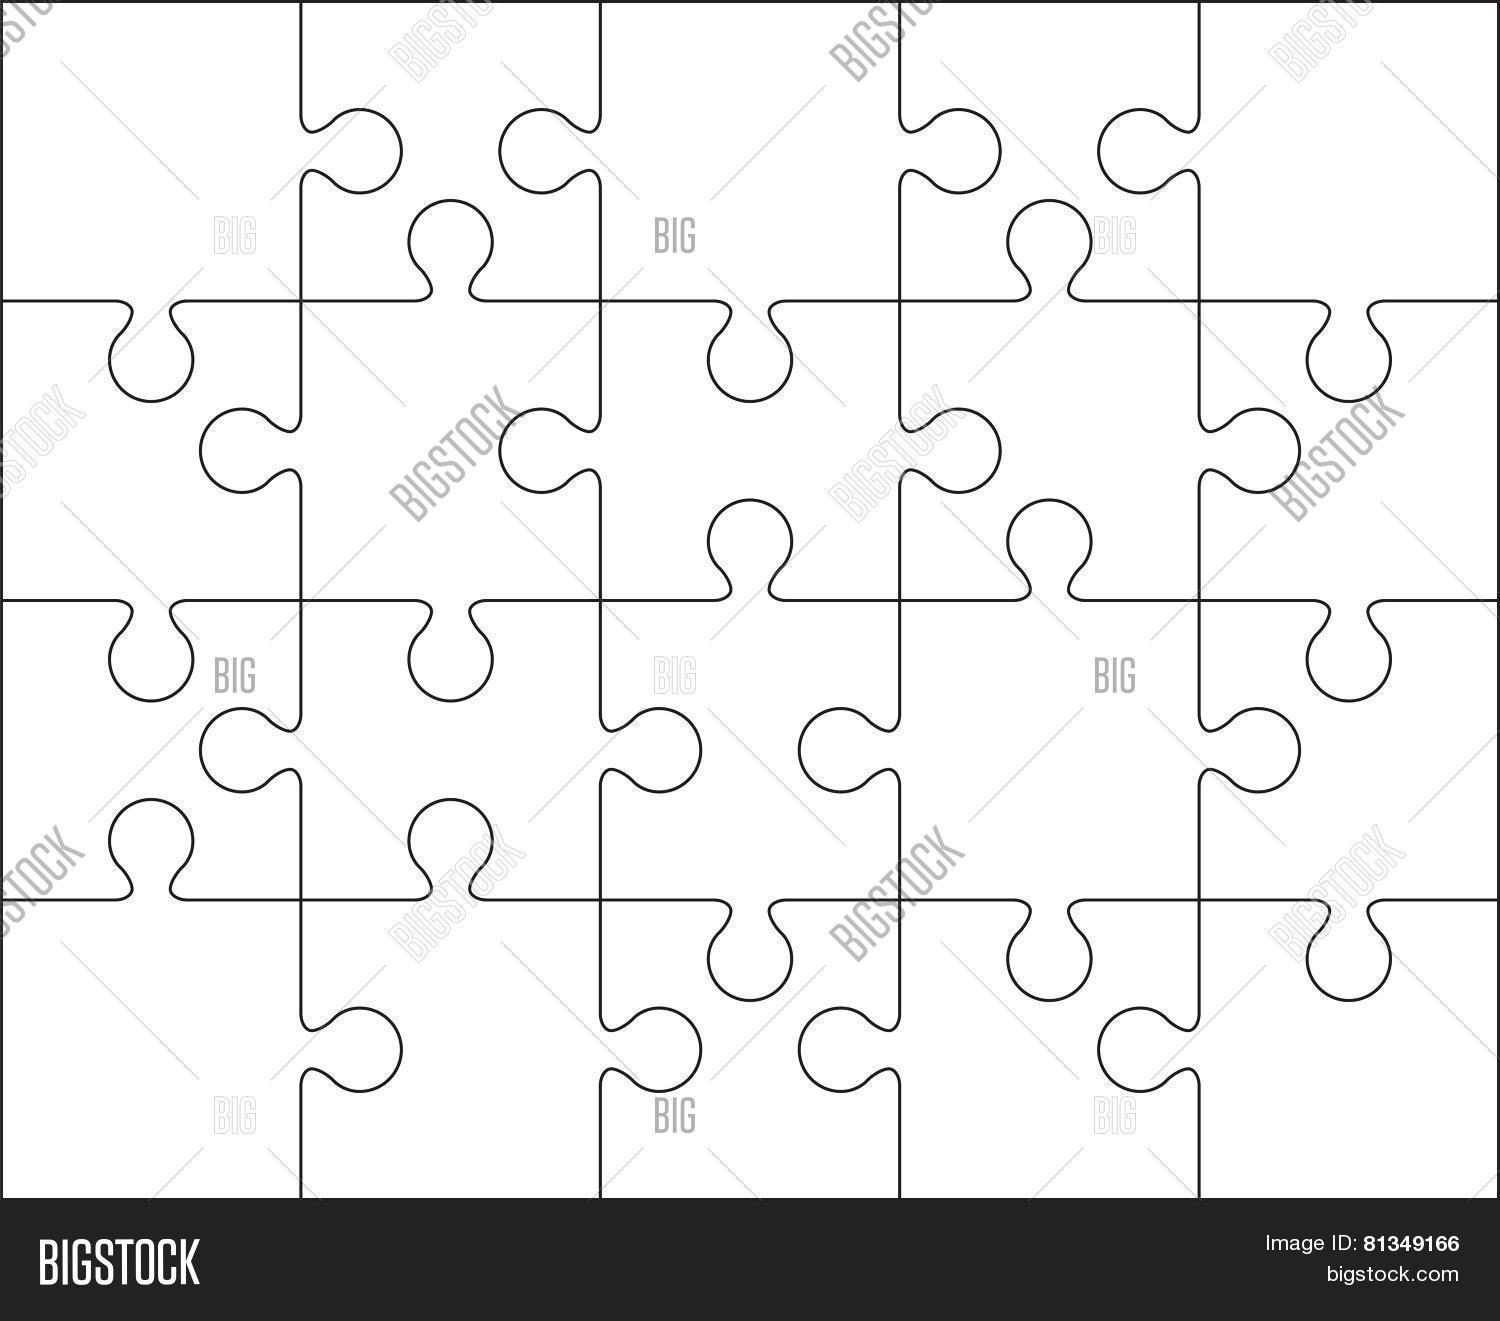 20 jigsaw puzzle vector photo free trial bigstock